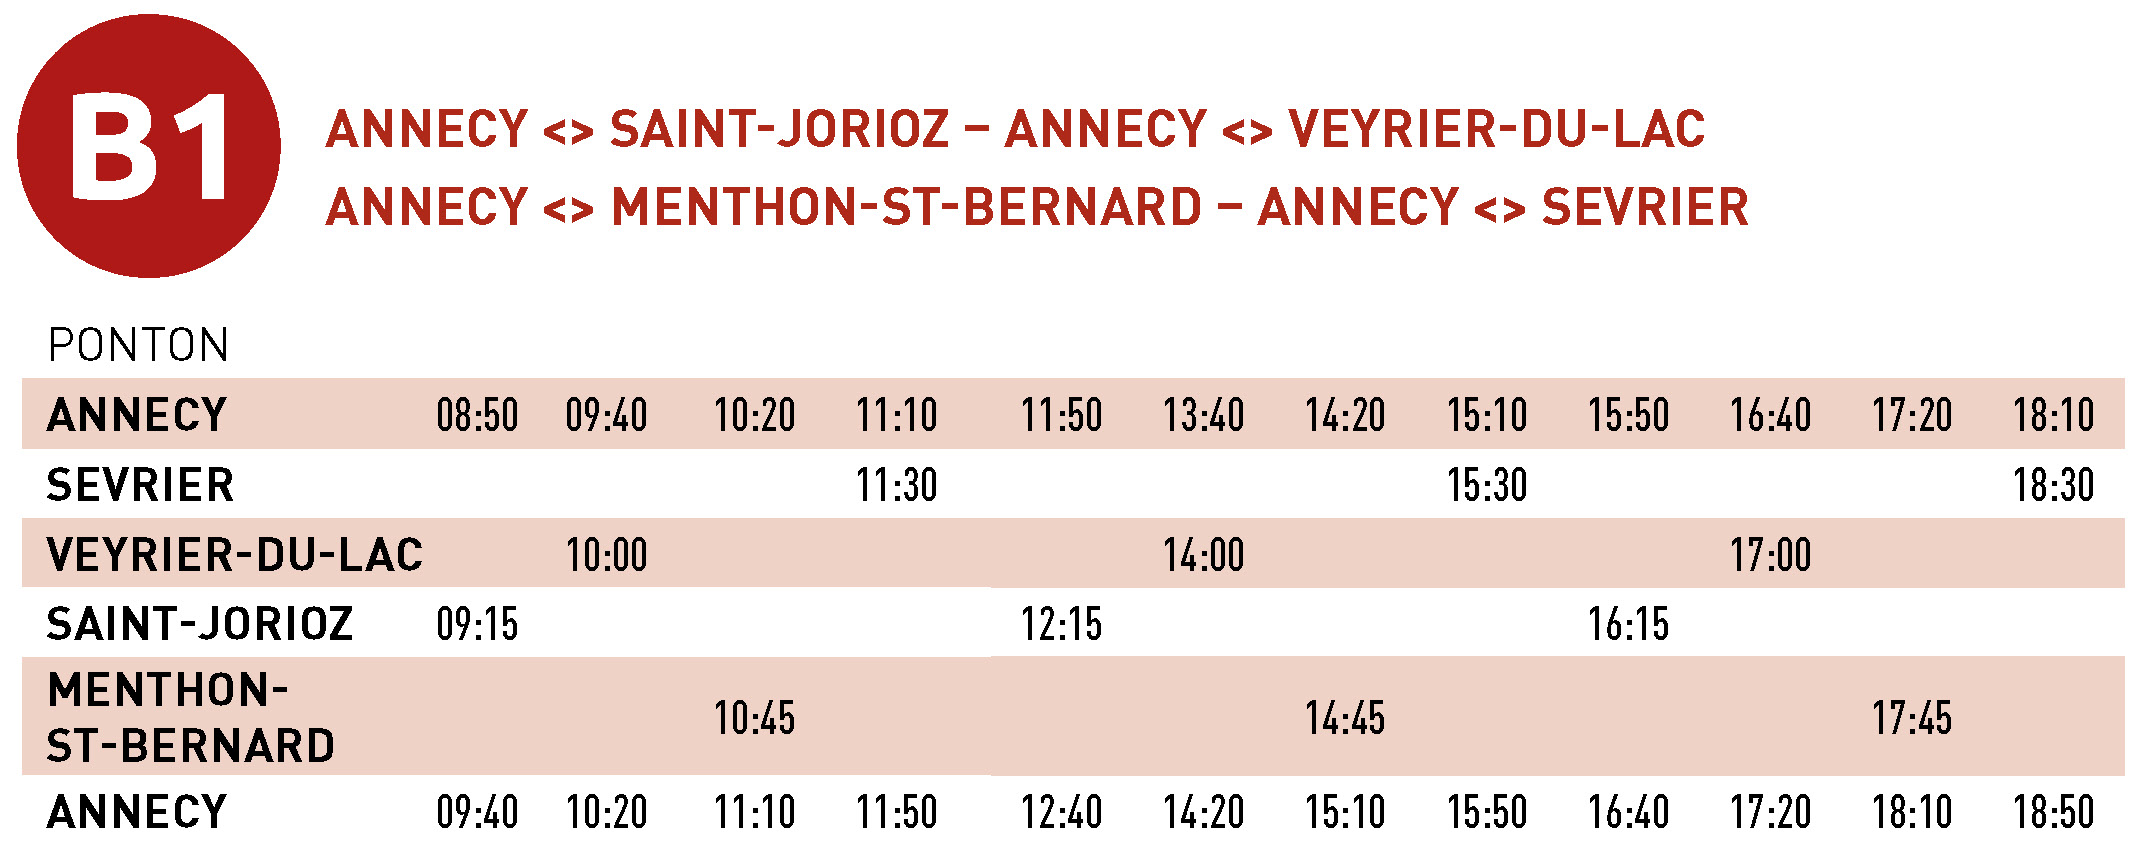 Grille horaire B1 - 2021